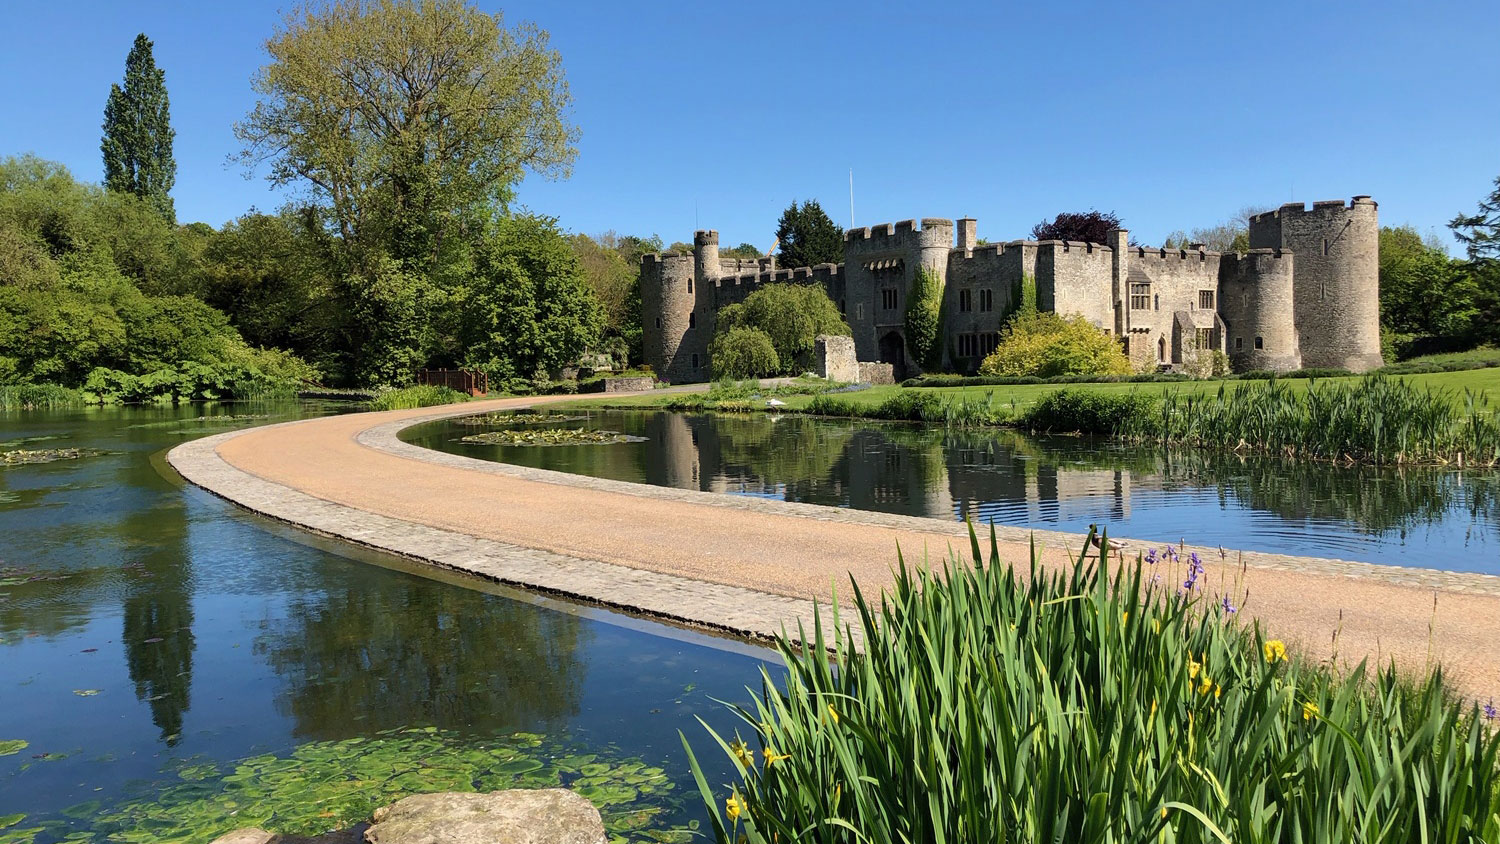 Take a trip on the Kentish Lady to Allington Castle